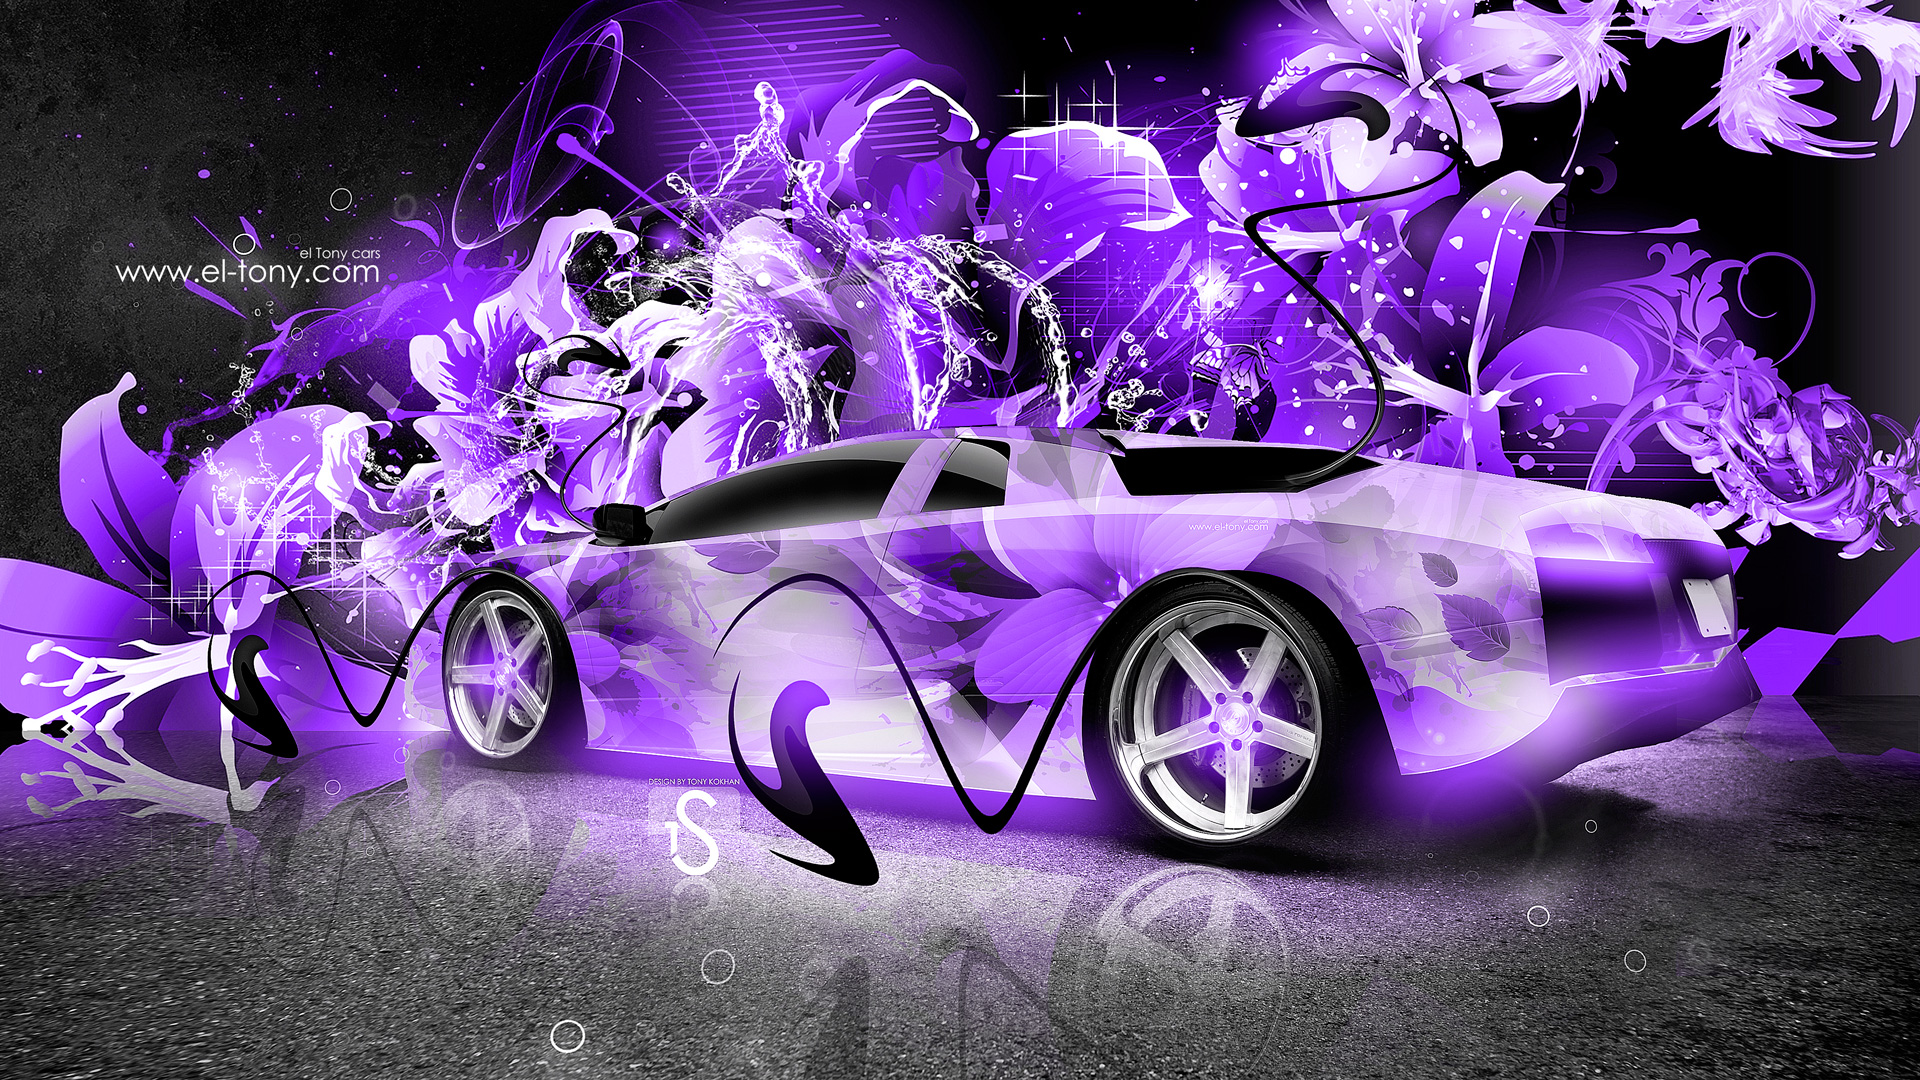 Gentil ... Lamborghini Murcielago Super Abstract Car 2013 Violet HD